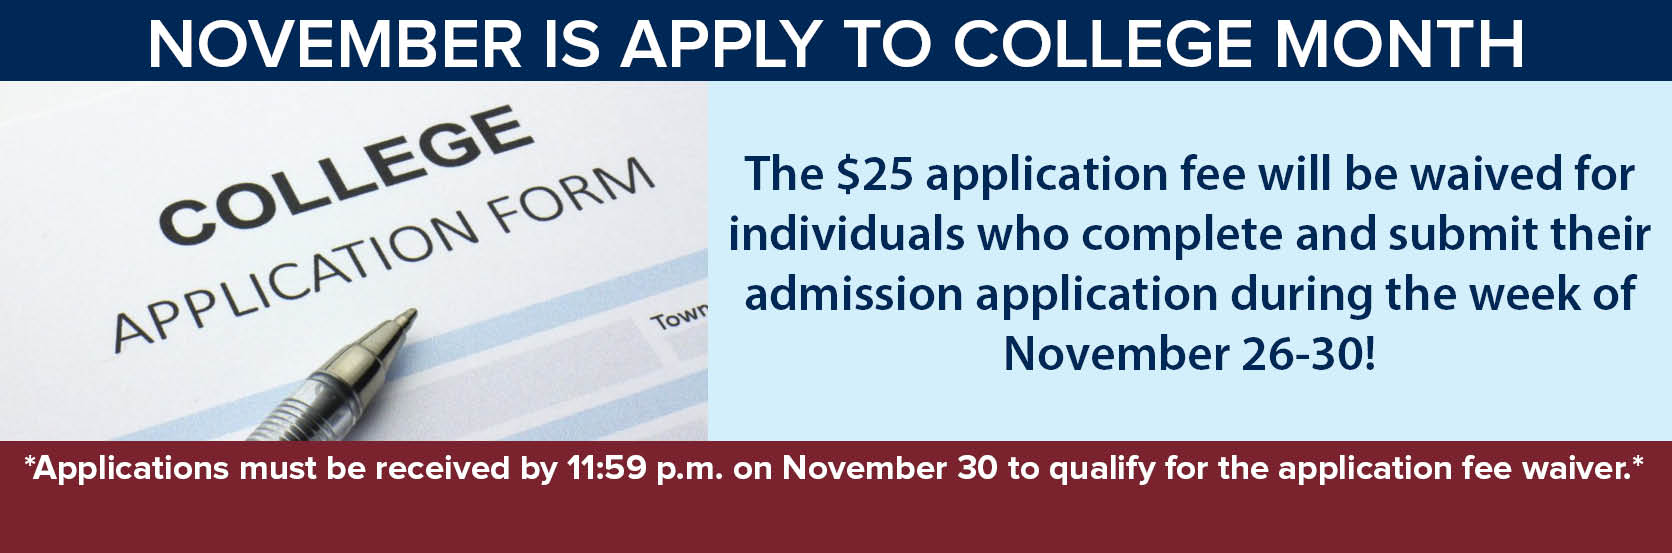 November is Apply to College Month! The $25 application fee will be waived for individuals who complete and submit their admission application during the week of November 26-30. Let someone know today!